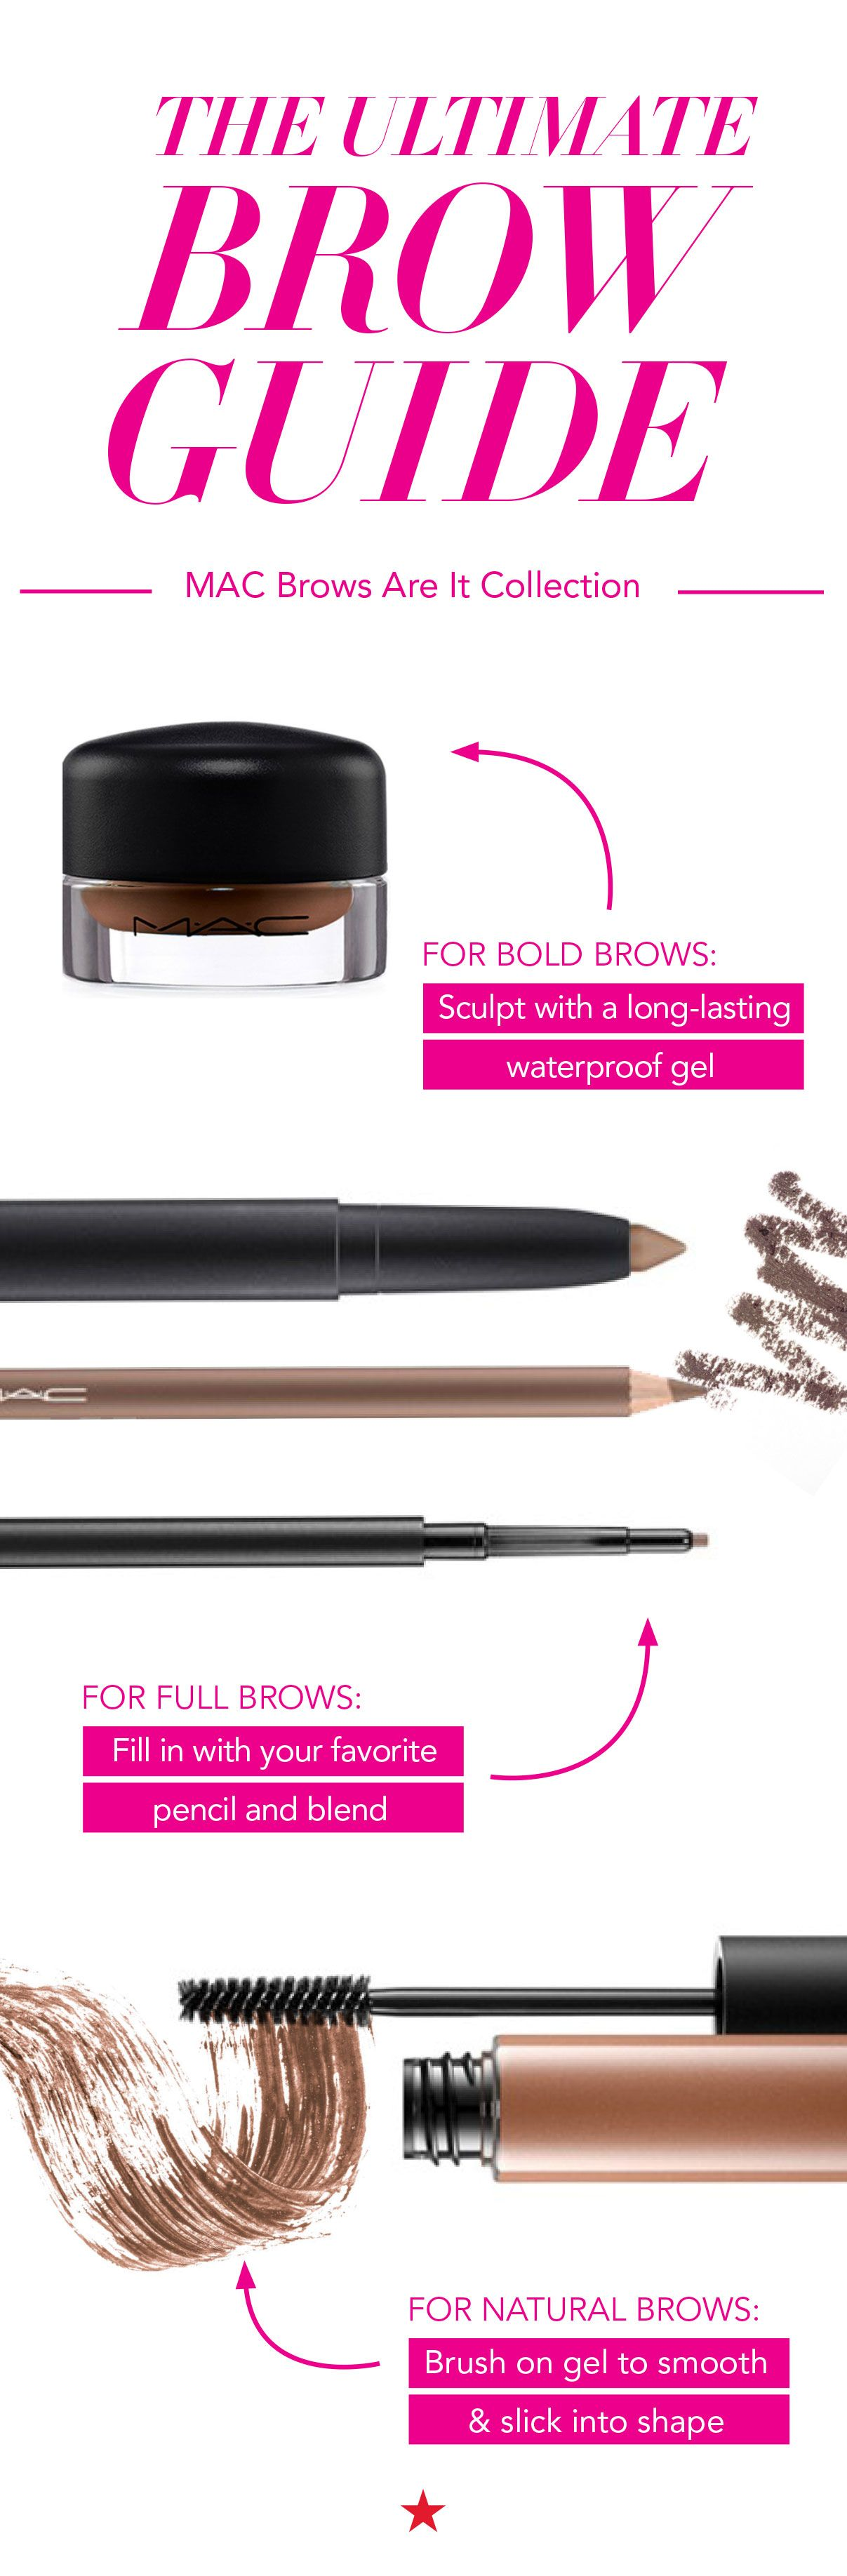 Are you trying to create a bold, full or natural brow look